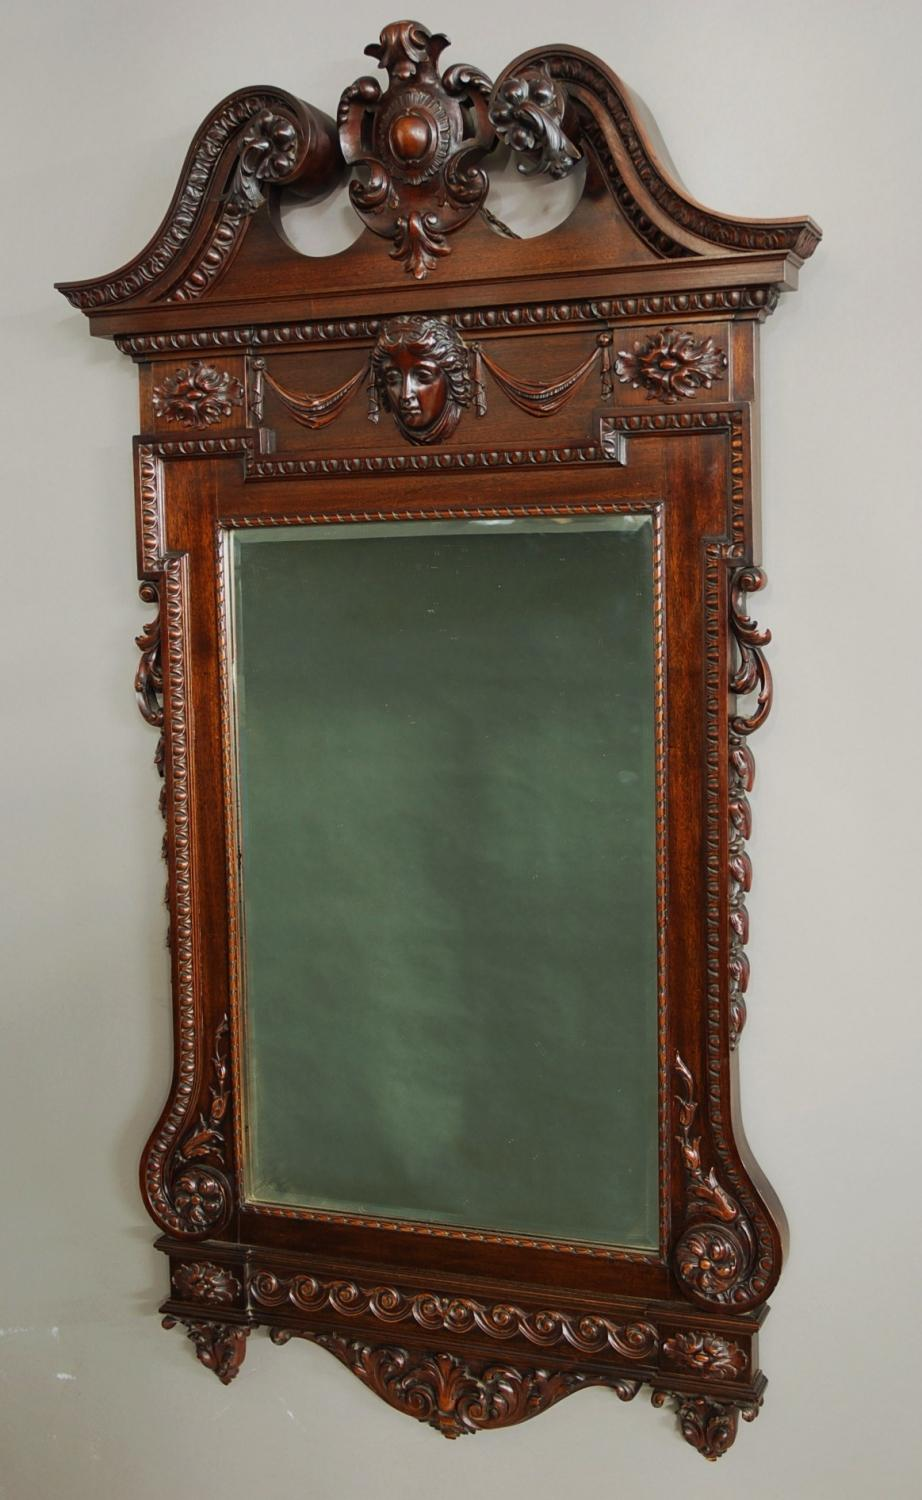 Mahogany mirror in the William Kent style